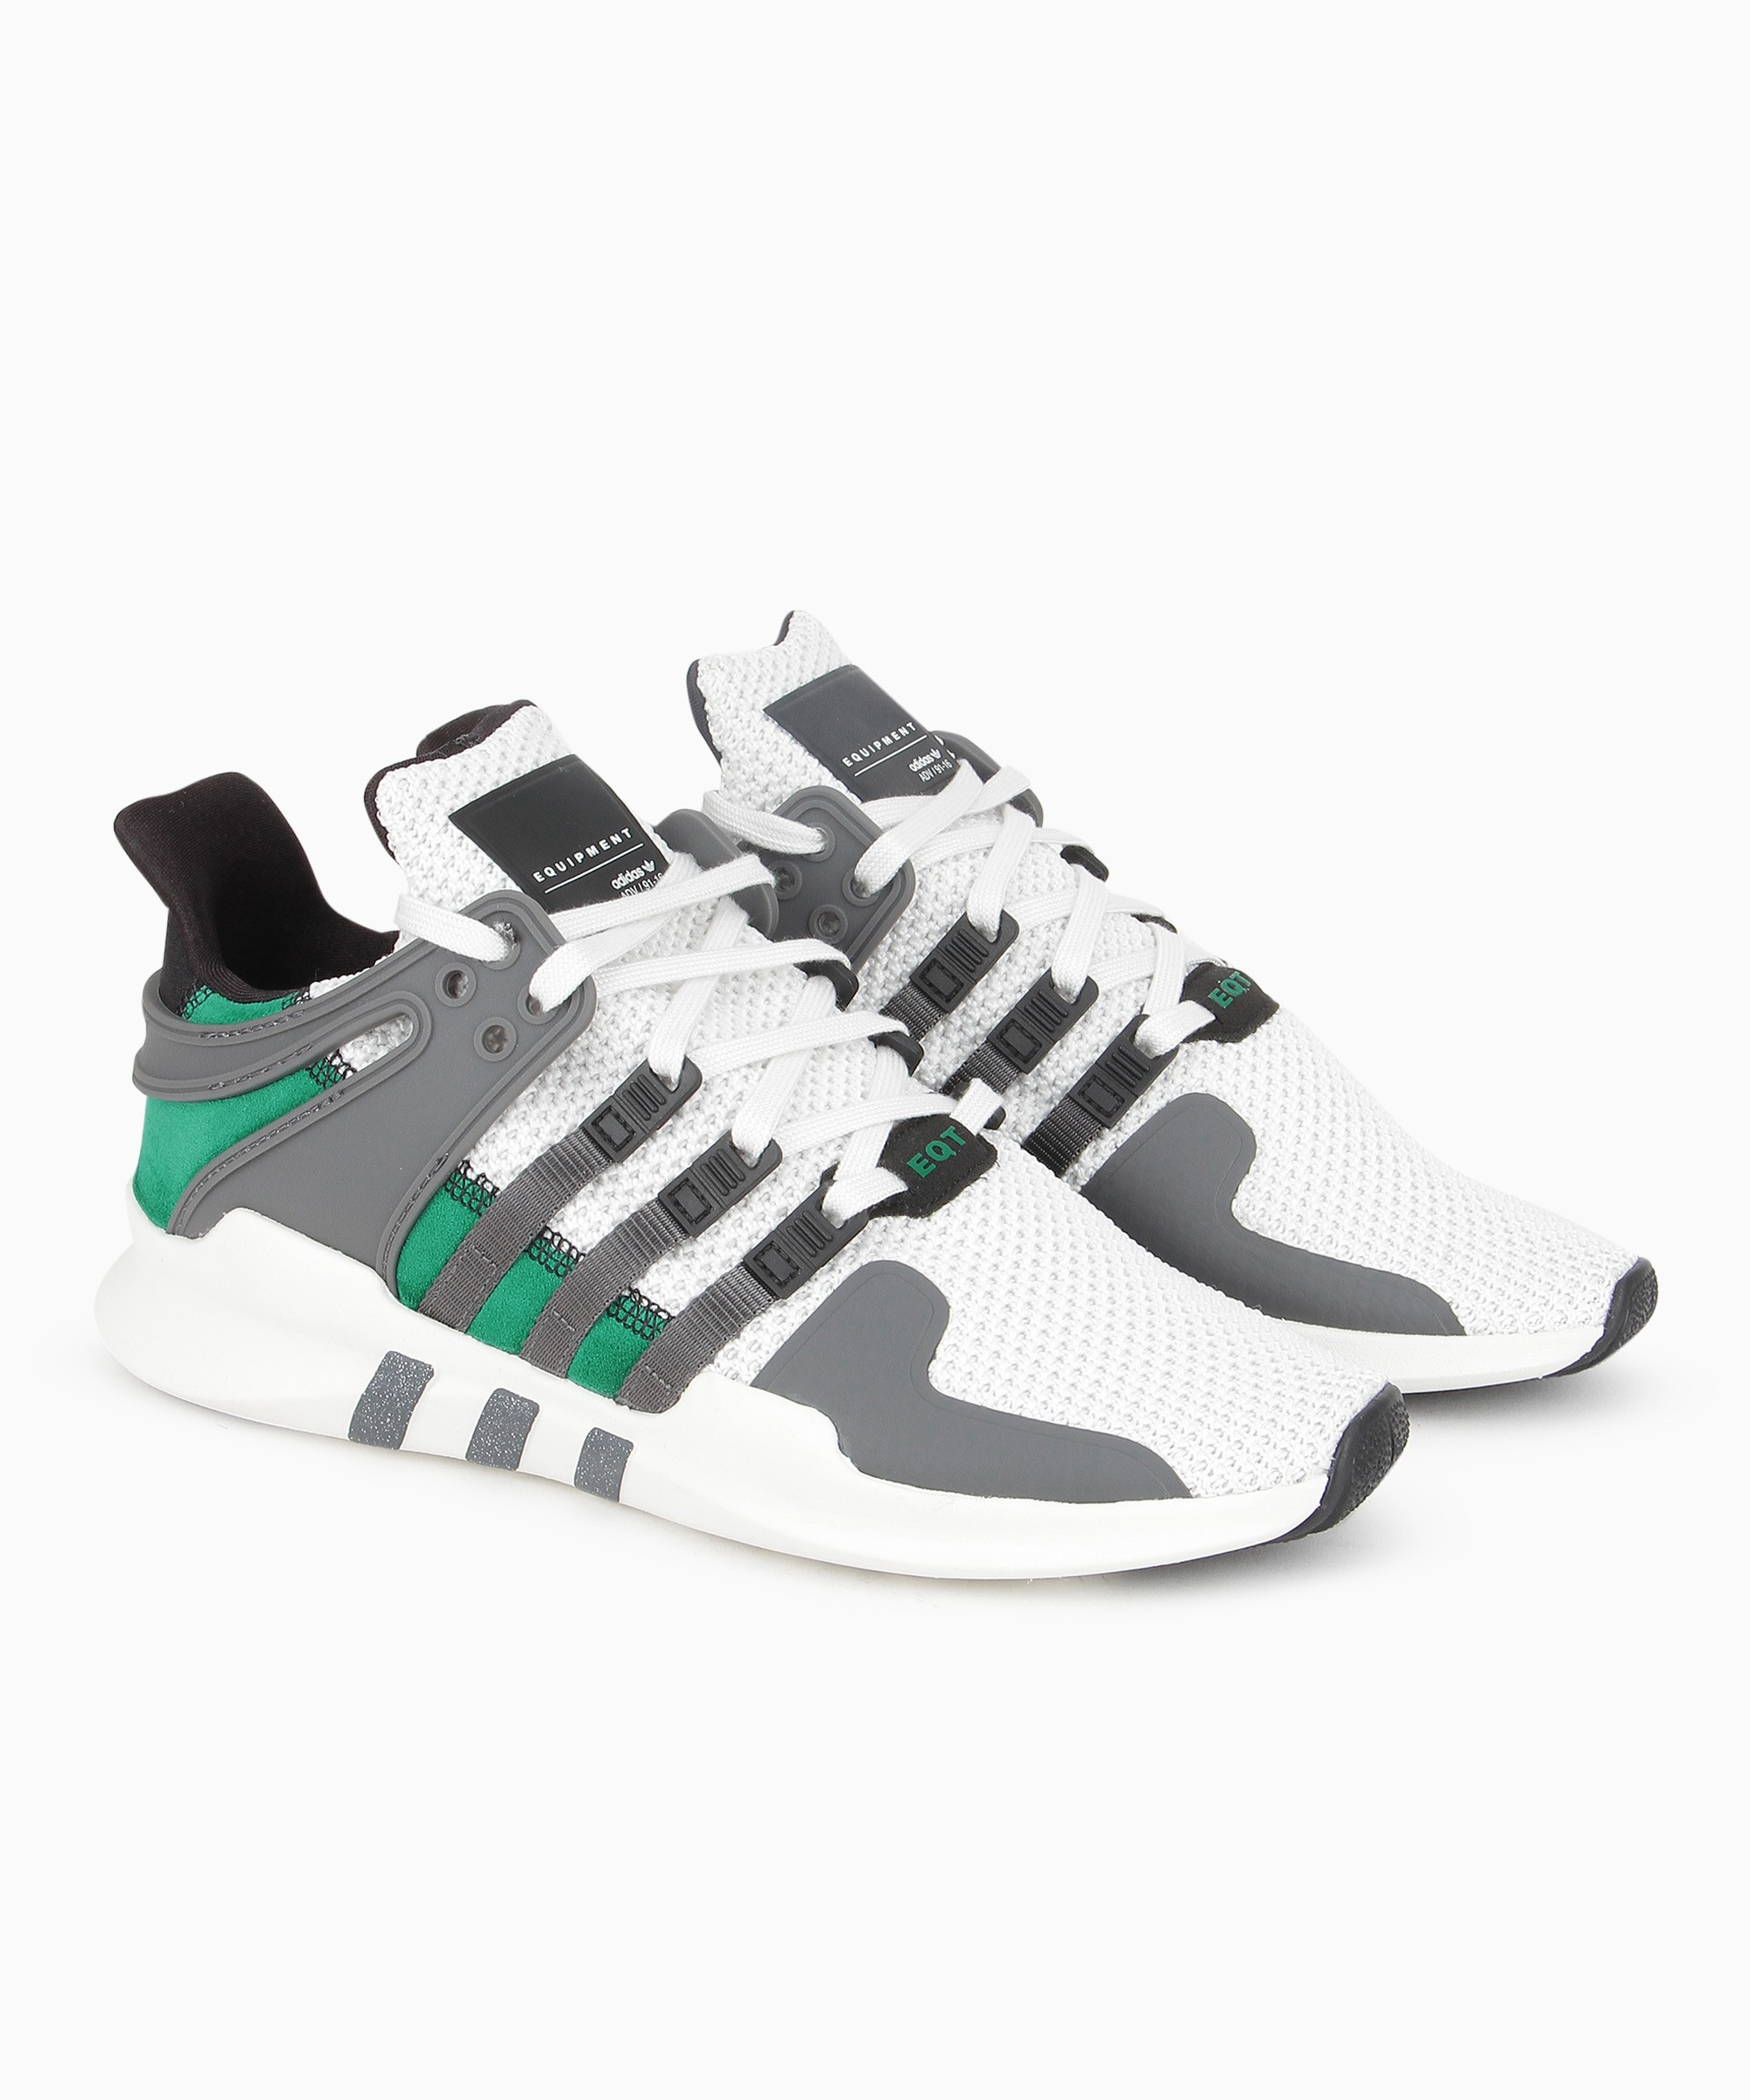 new products 15b74 ad382 ADIDAS ORIGINALS EQT SUPPORT ADV W Training  GYM Shoe For Women(White, Grey